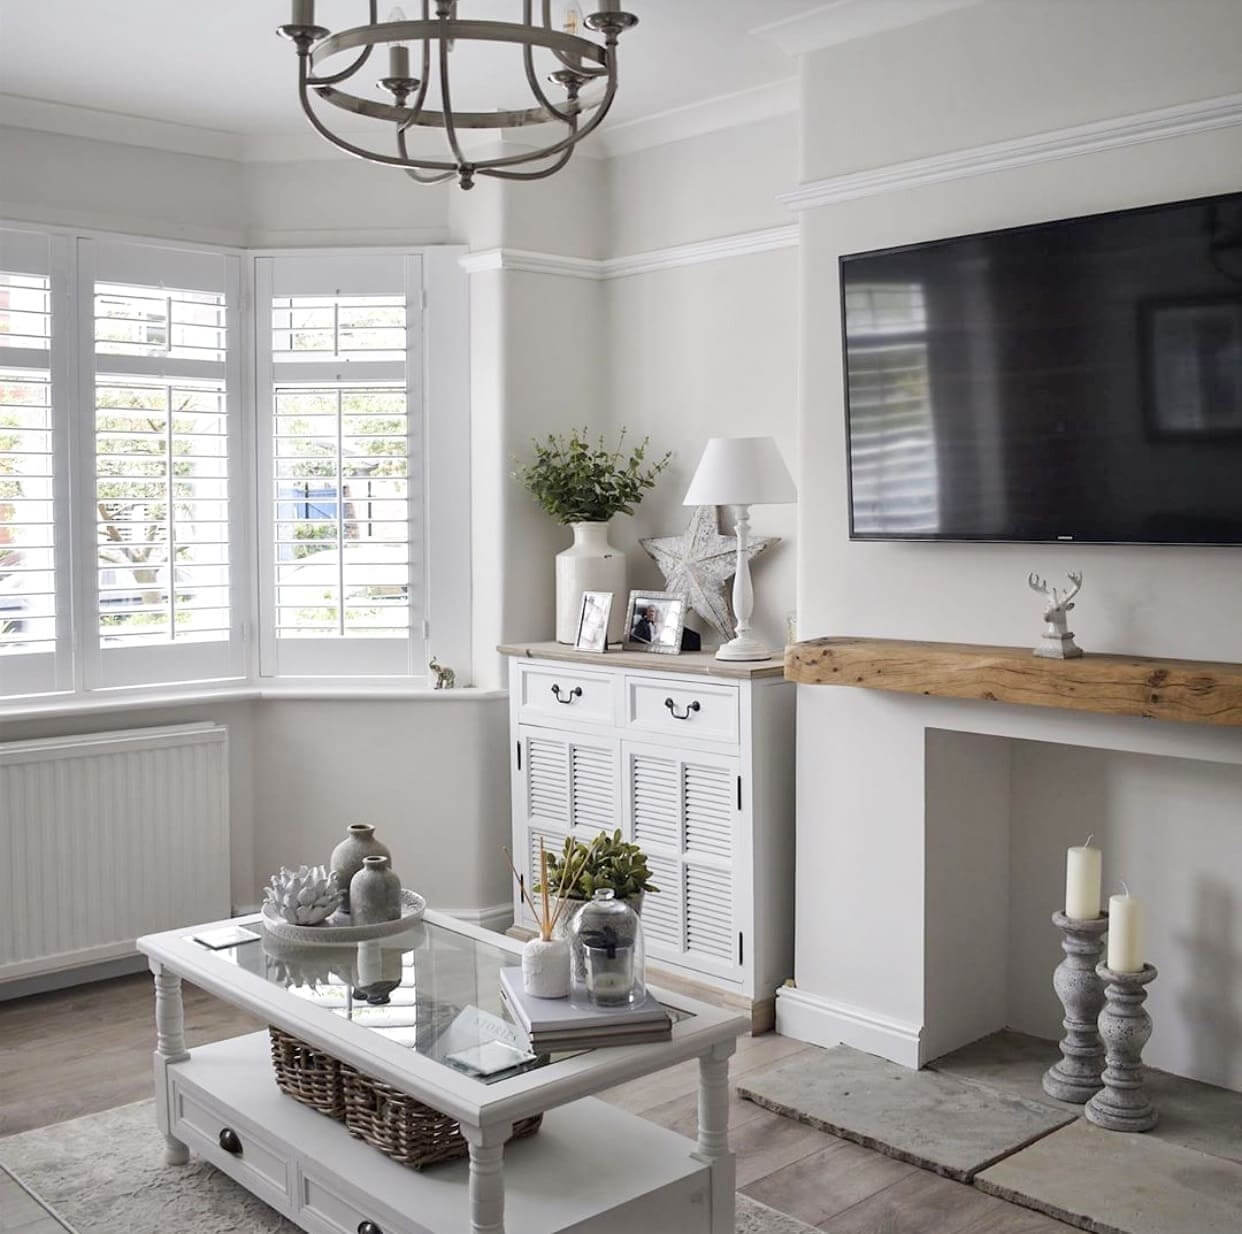 ARE SHUTTERS THE RIGHT CHOICE?